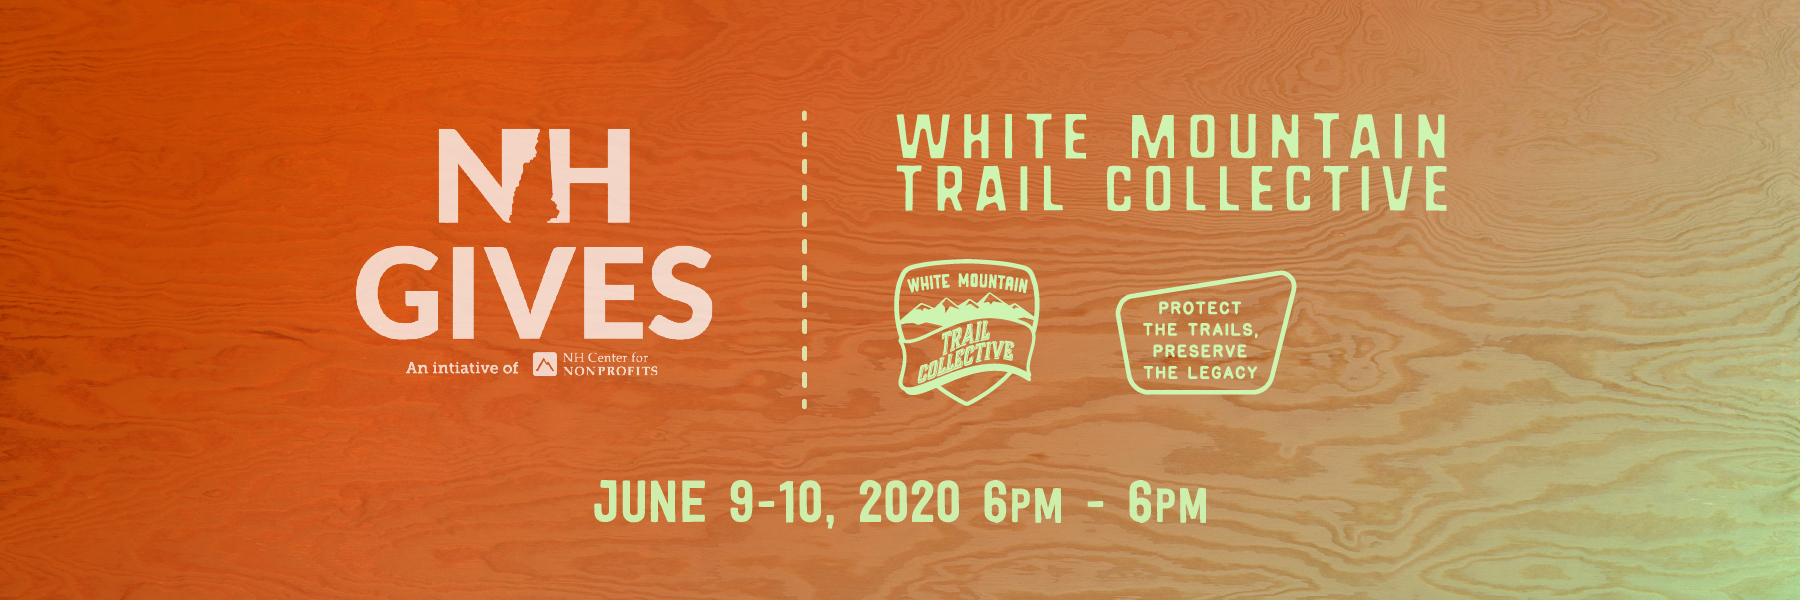 white-mountain-trail-collective-NHGives